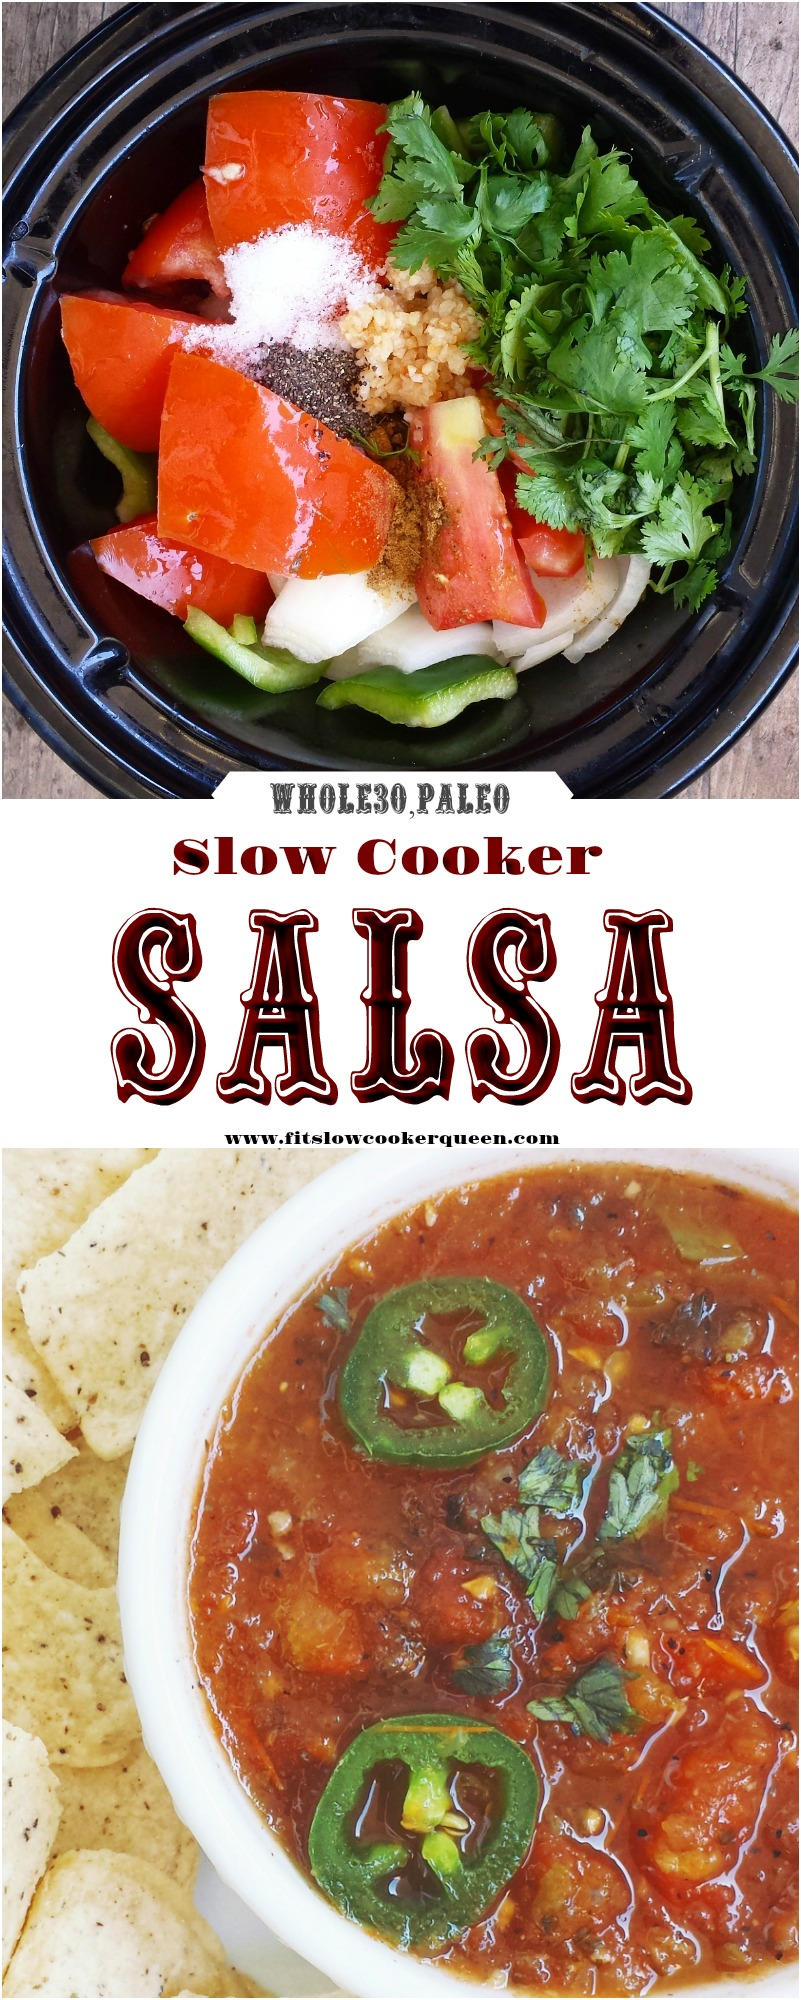 This salsa recipe is so easy & good you might never buy store-bought again. Using fresh ingredients, you'll have restaurant-style made in your slow cooker.